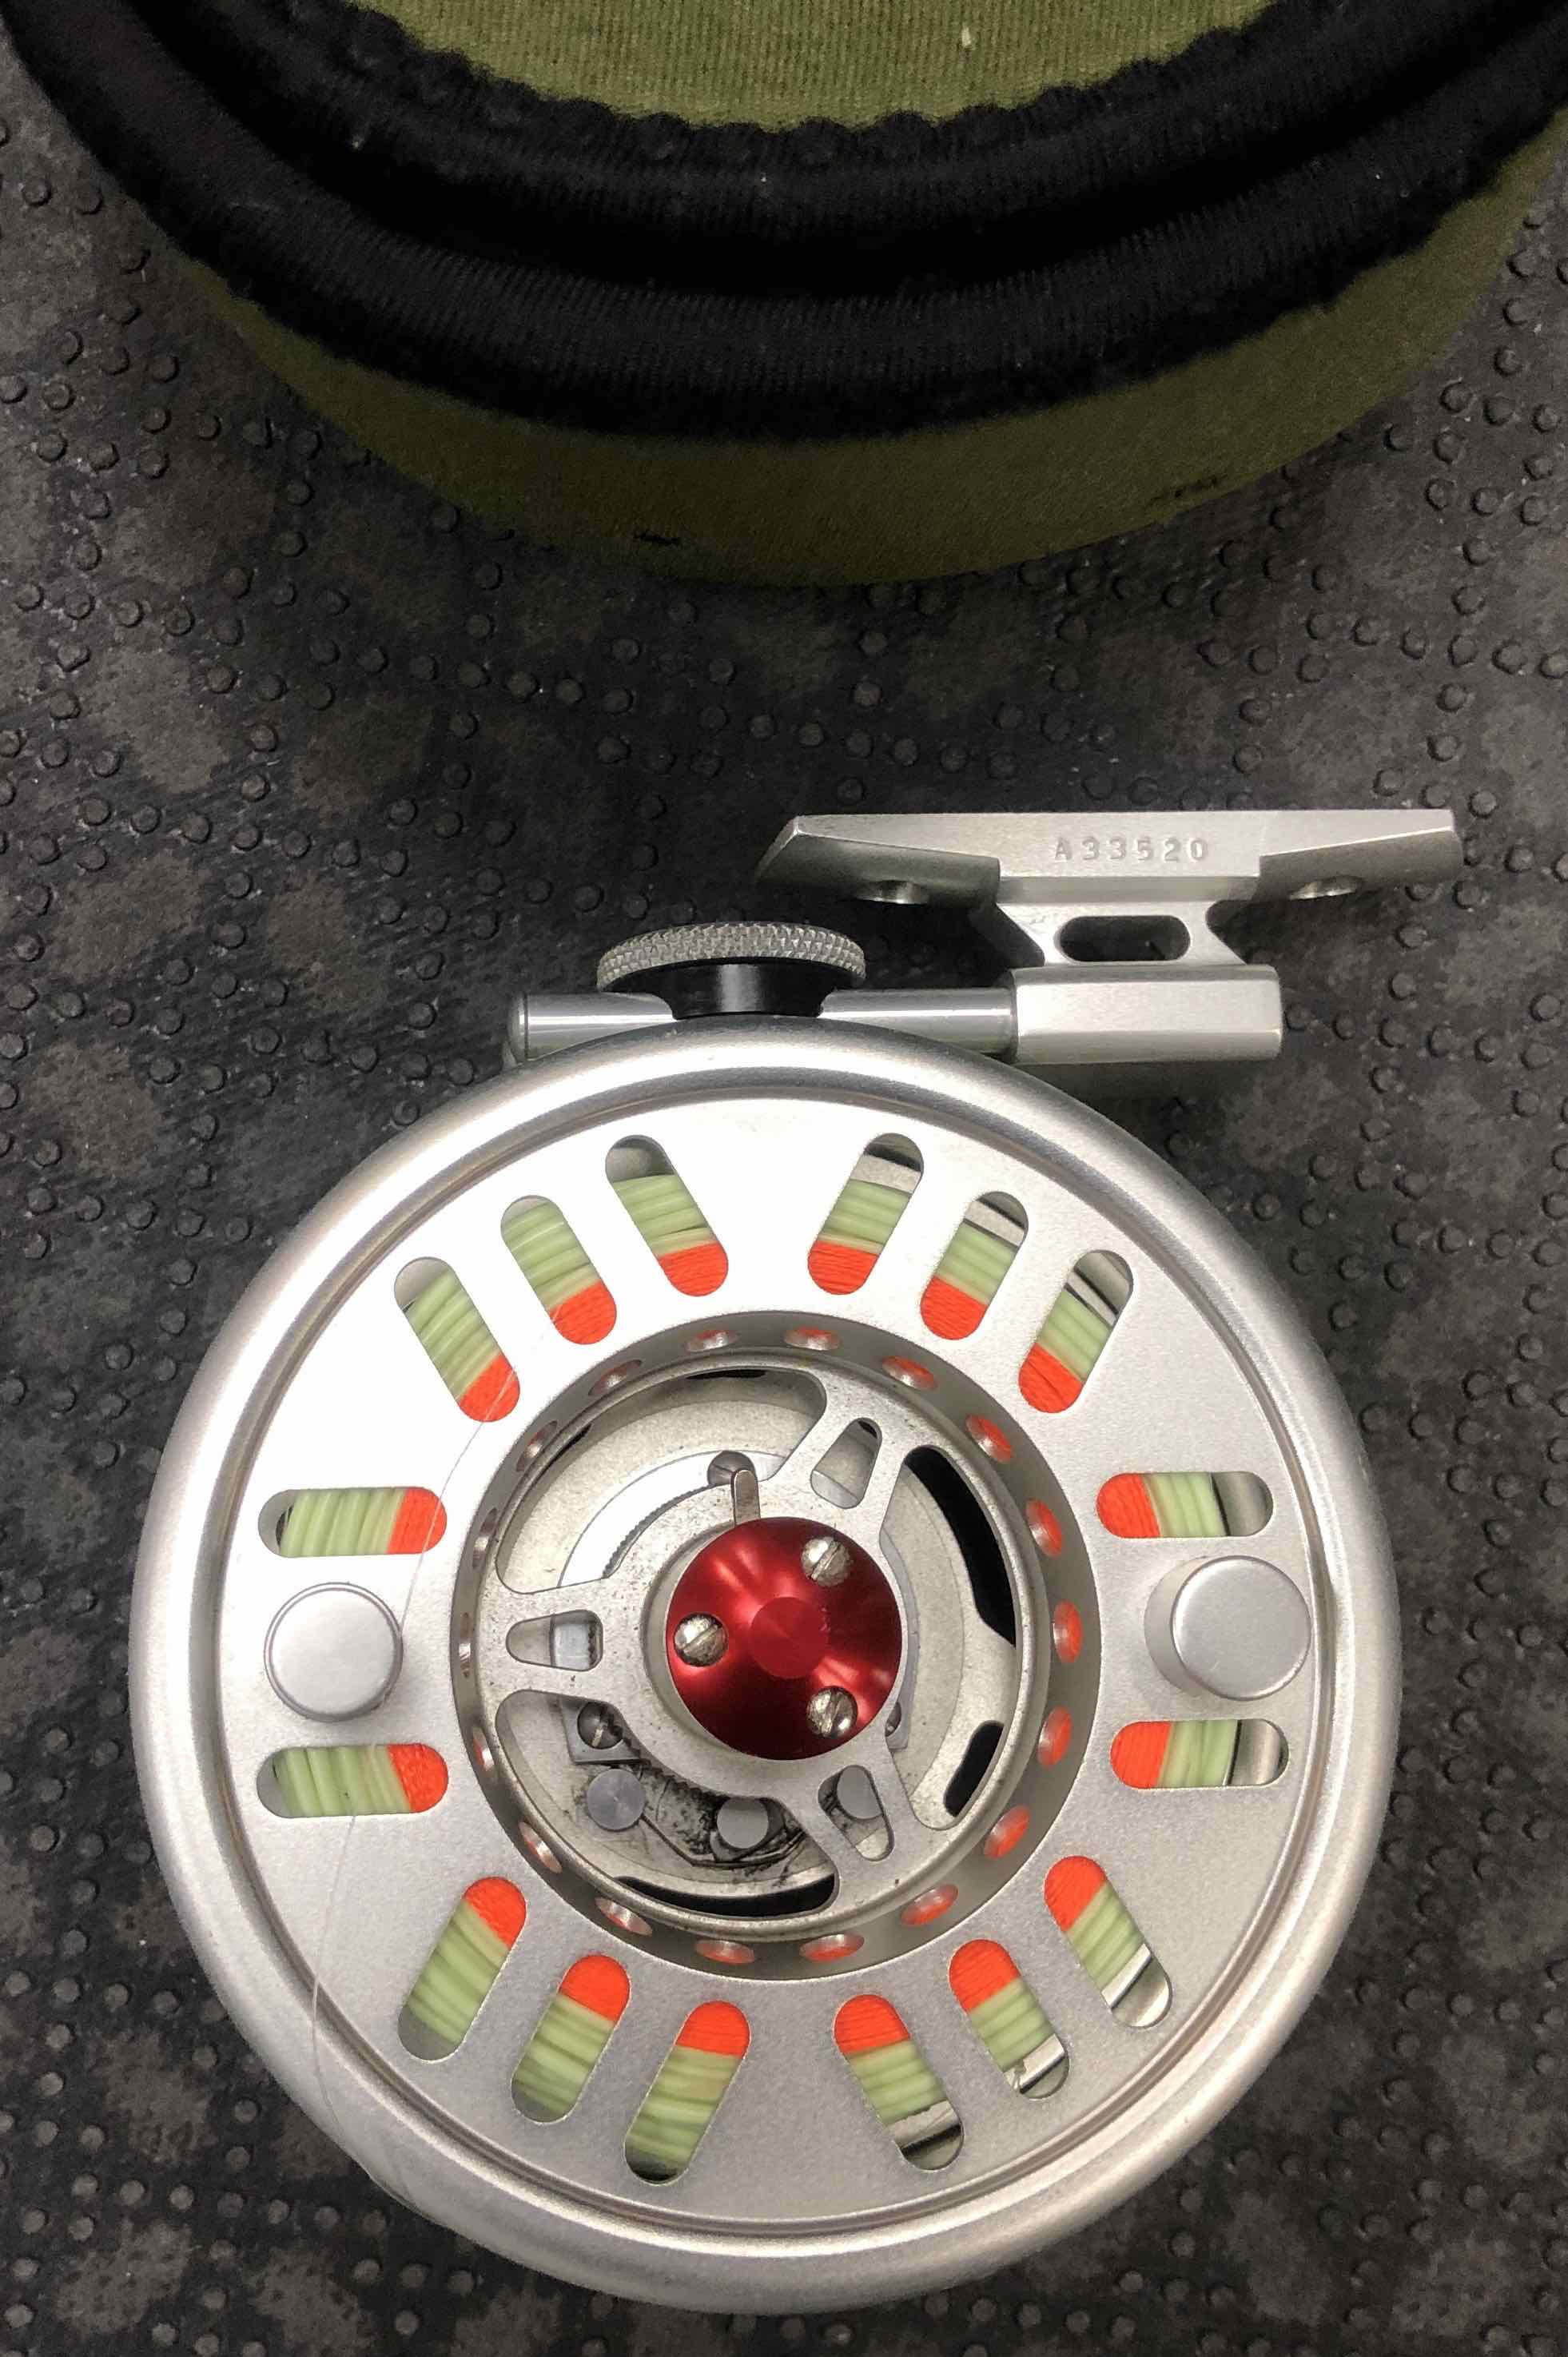 NEW PRICE - Hardy Limited Edition 975 SE - Swift Fly Reel - c/w WF8 Fly Line - GREAT SHAPE! - WAS $300 - NOW $250